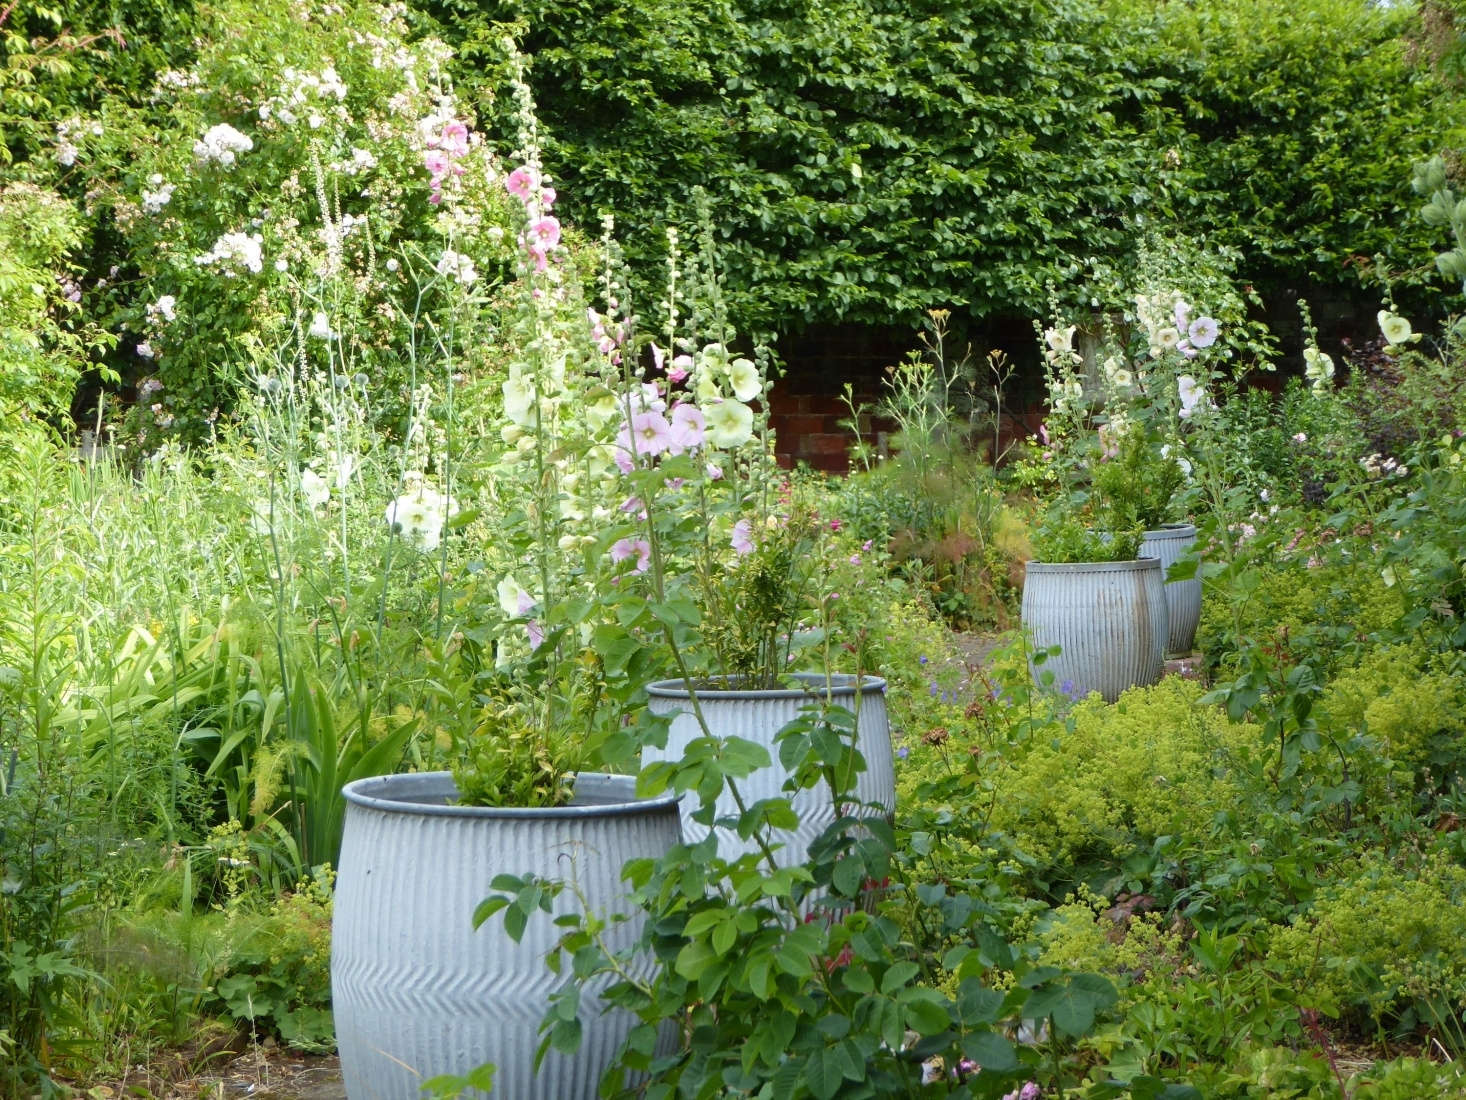 """At a former estate gardener's cottage in rural Suffolk, in England, galvanized dolly tubs set the tone """"for the wild feeling of the garden beyond with brick-edged beds spilling over with roses, Alchemilla mollis, and in midsummer lots of pastel-toned hollyhocks,"""" writes our contributor Clare Coulson. See more in English Cottage Gardening: 8 Lessons Learned in Rural Suffolk. Photograph by Clare Coulson."""